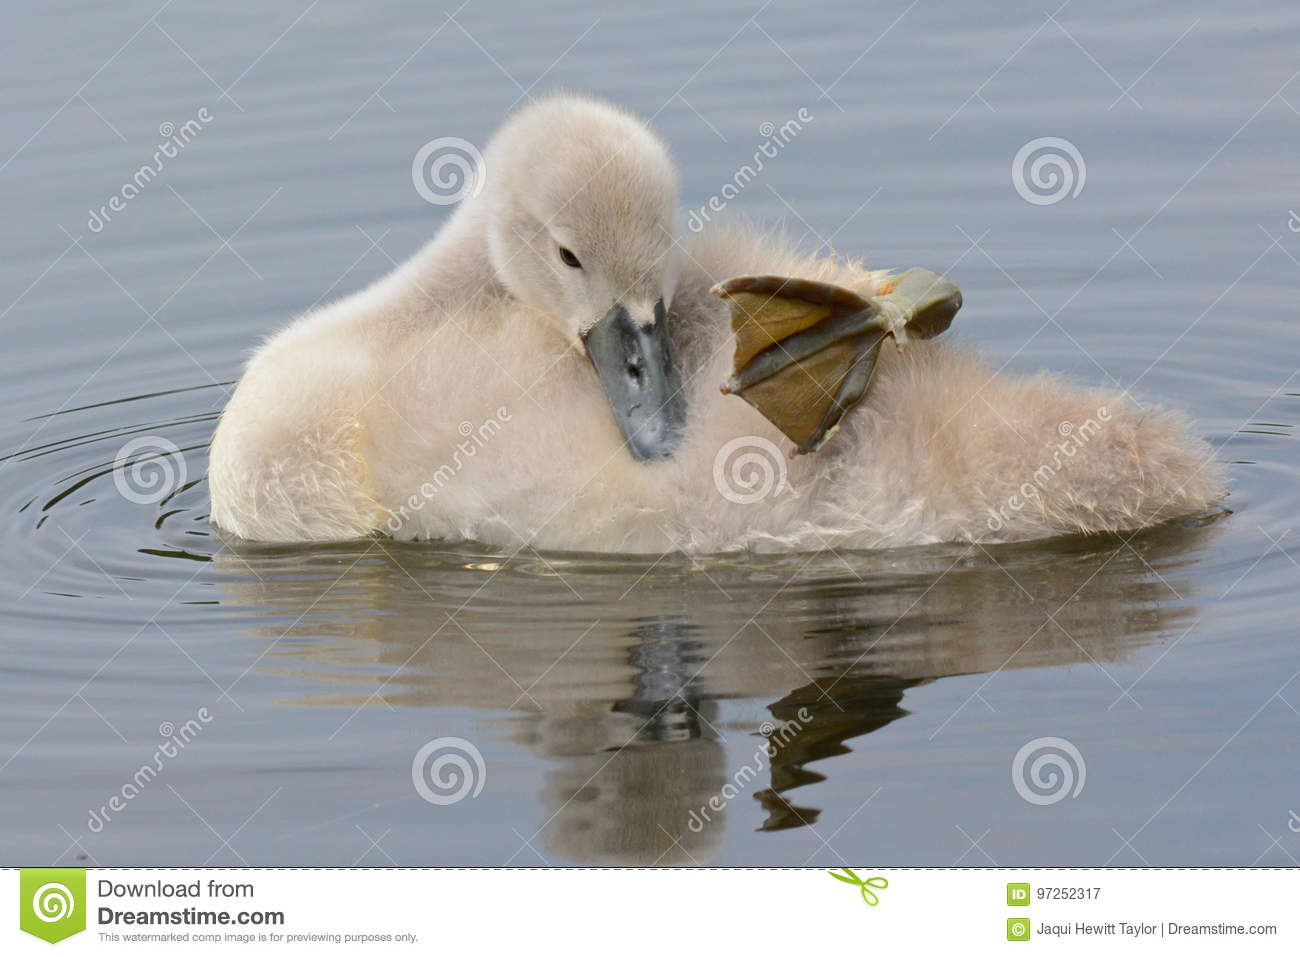 A cygnet sleeping on the water